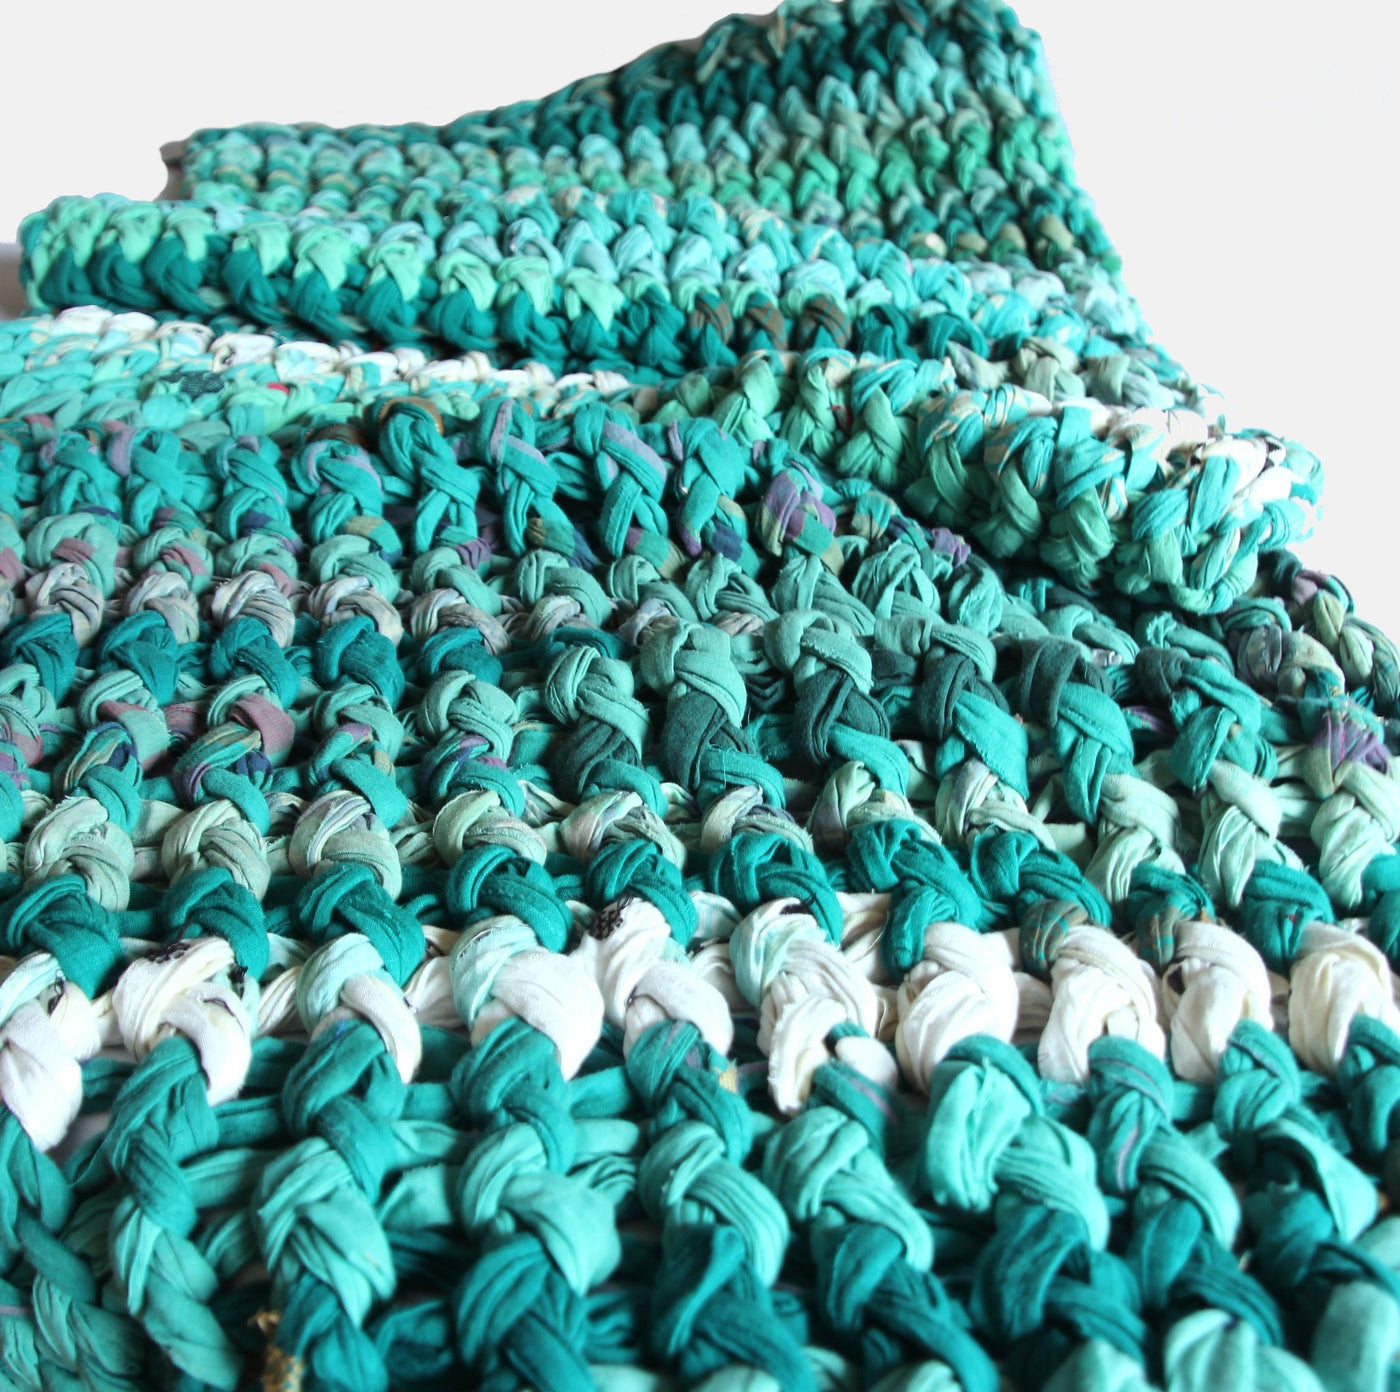 Blankets fair trade ethical sustainable fashion Knotted Throw - Mountain Greens conscious purchase Basha